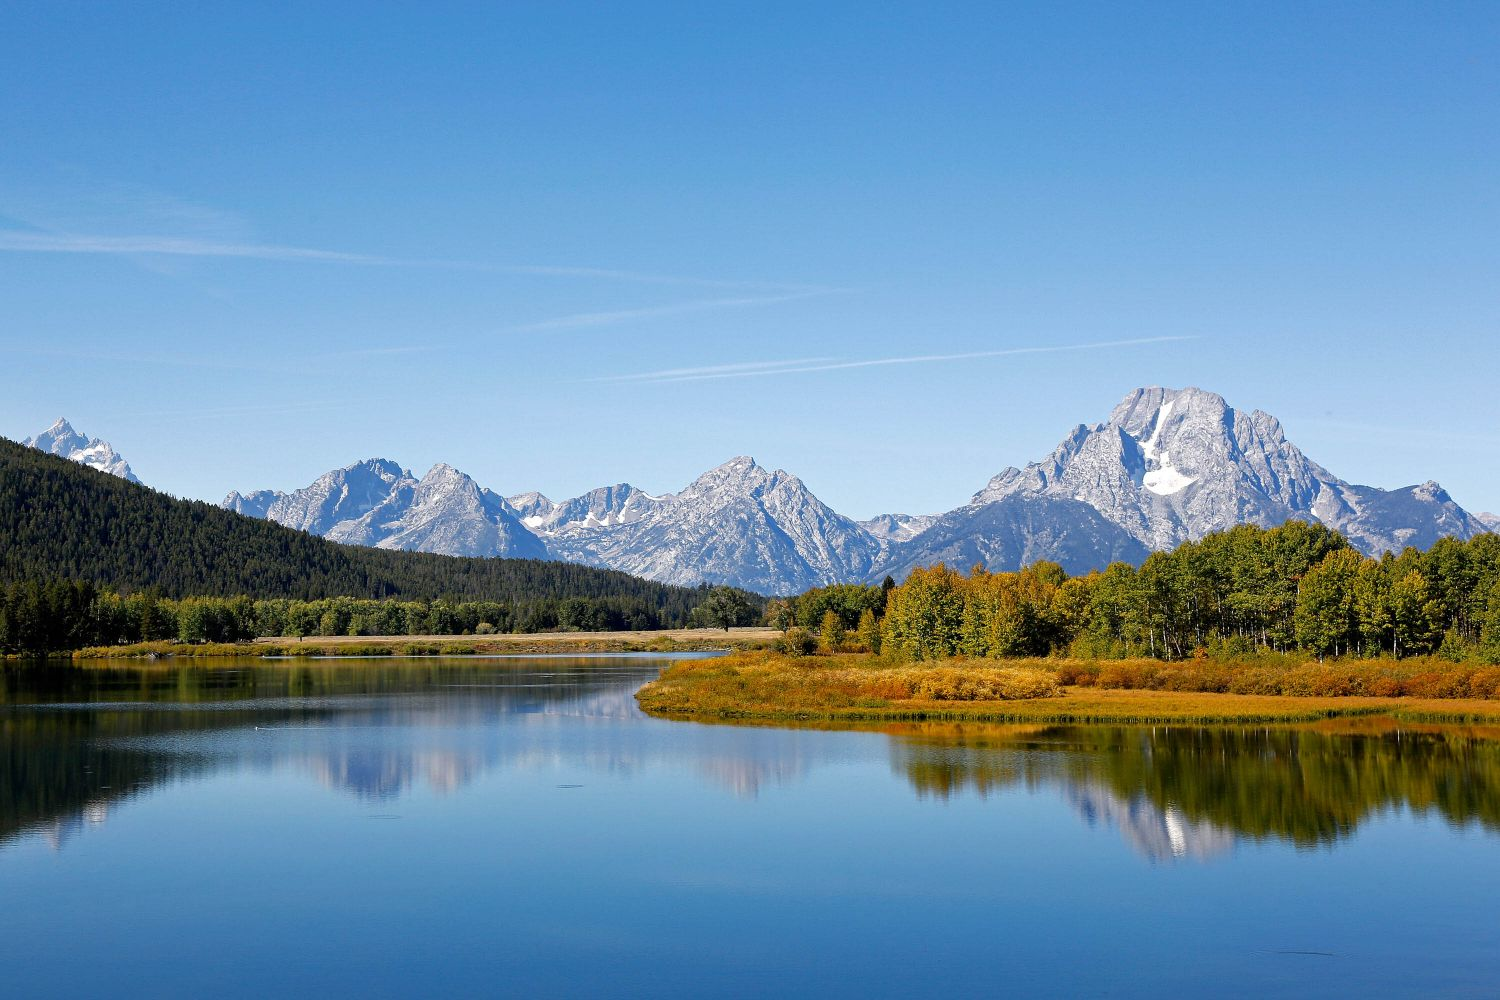 Mount Moran, Snake River at Oxbow Bend Grand Teton